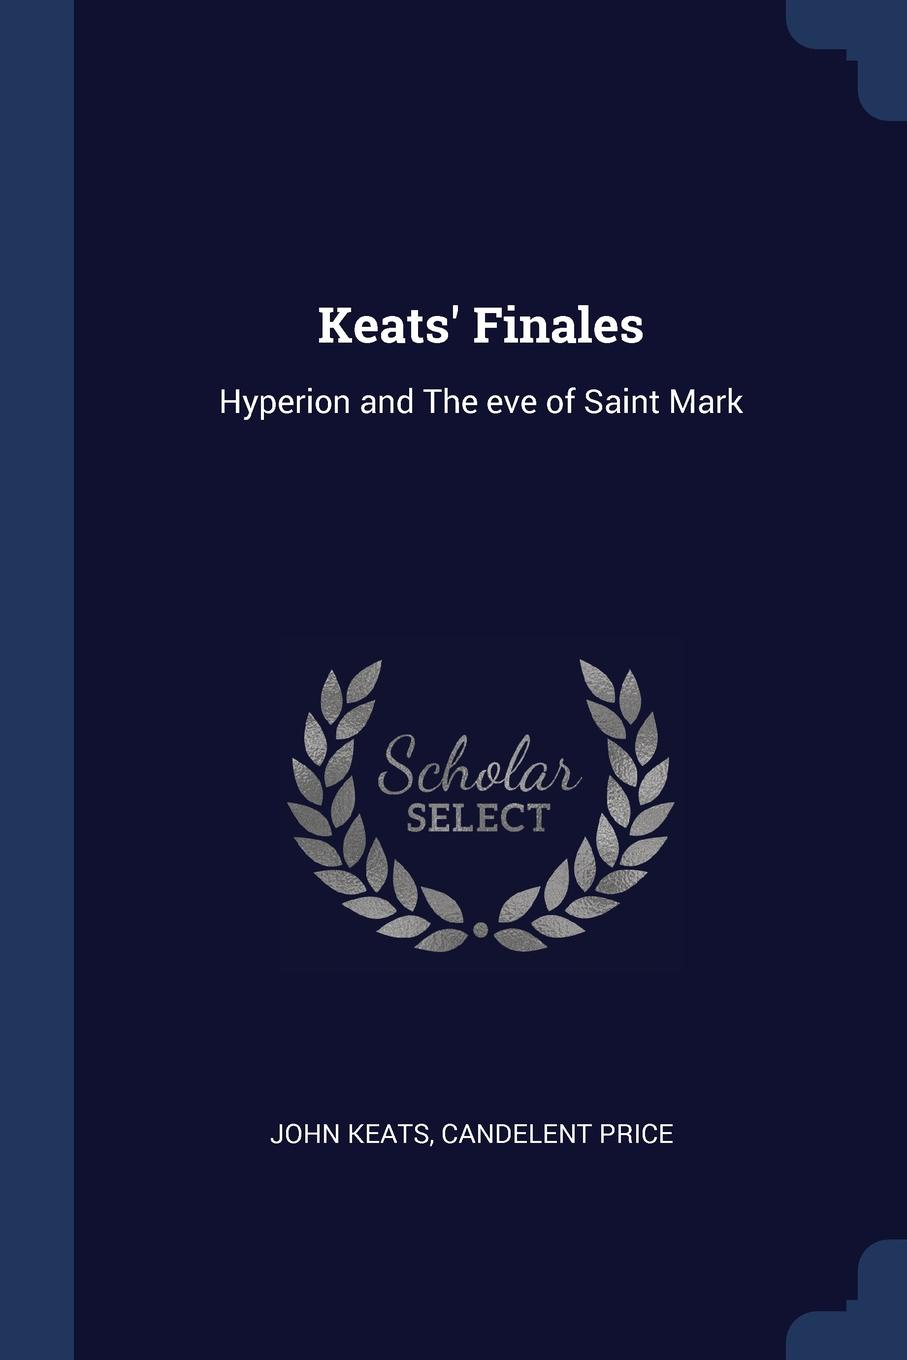 Keats. Finales. Hyperion and The eve of Saint Mark. John Keats, Candelent Price